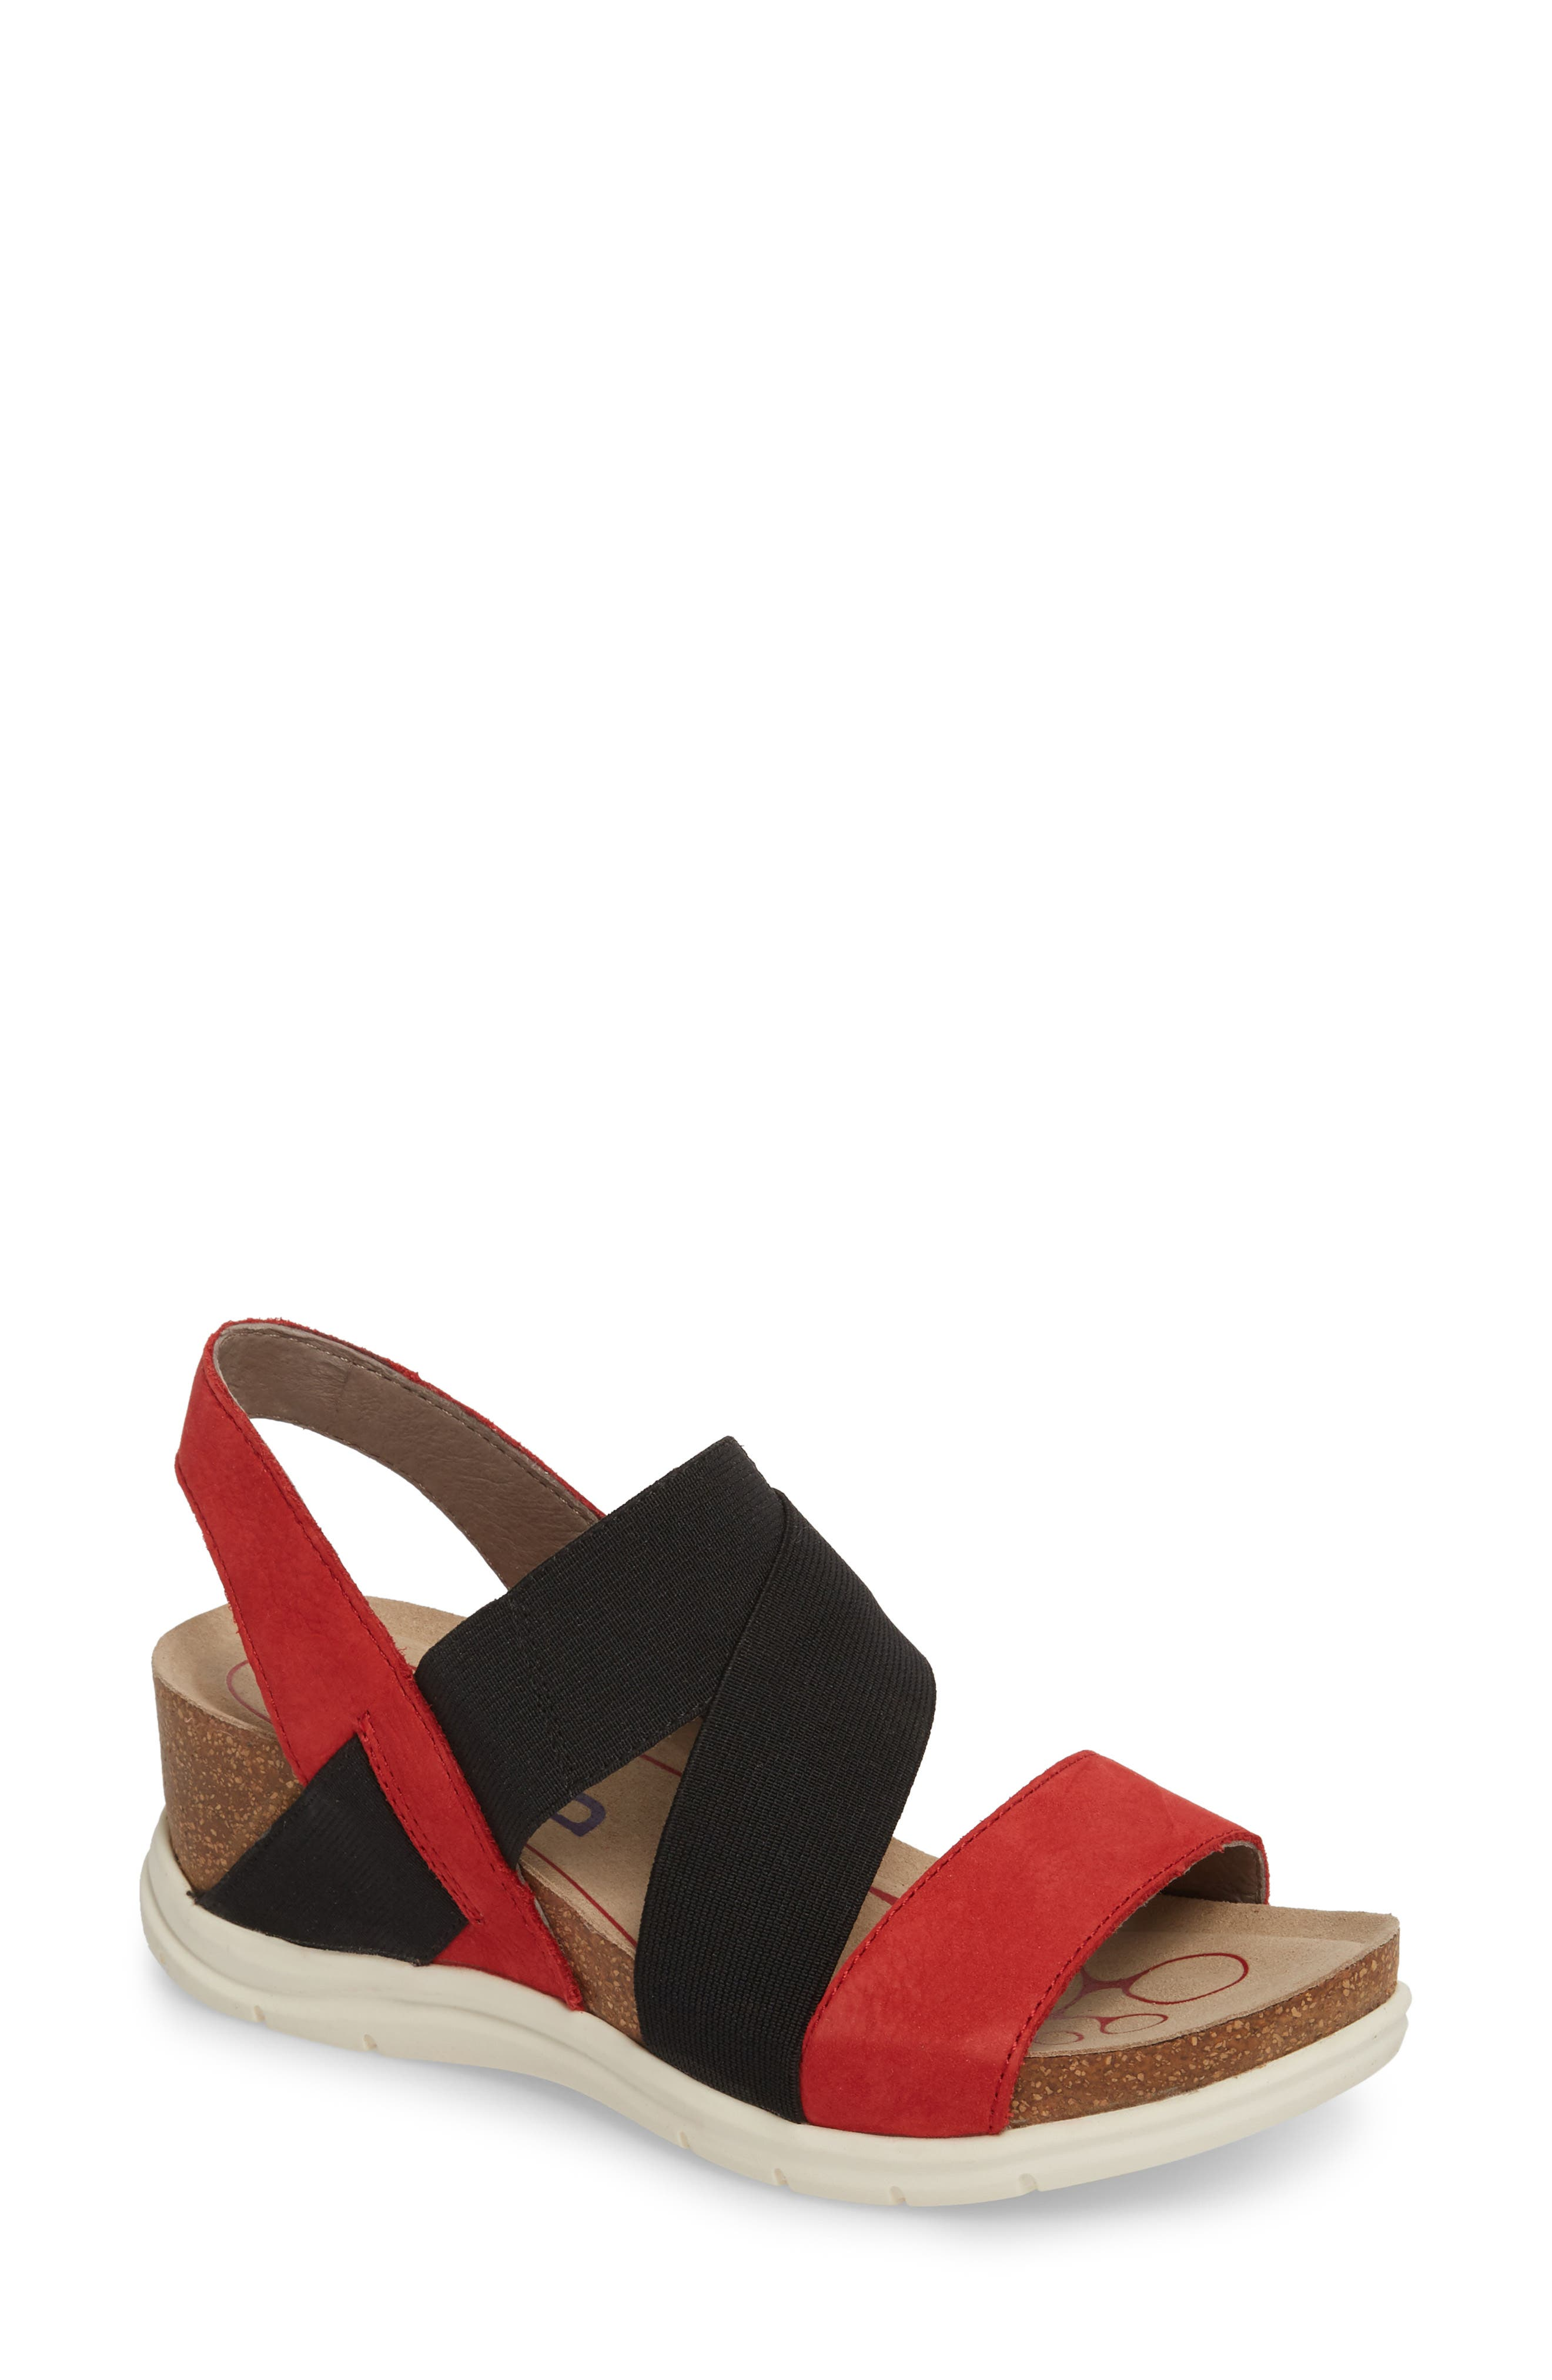 Paisley Wedge Sandal,                             Main thumbnail 1, color,                             Coral Leather